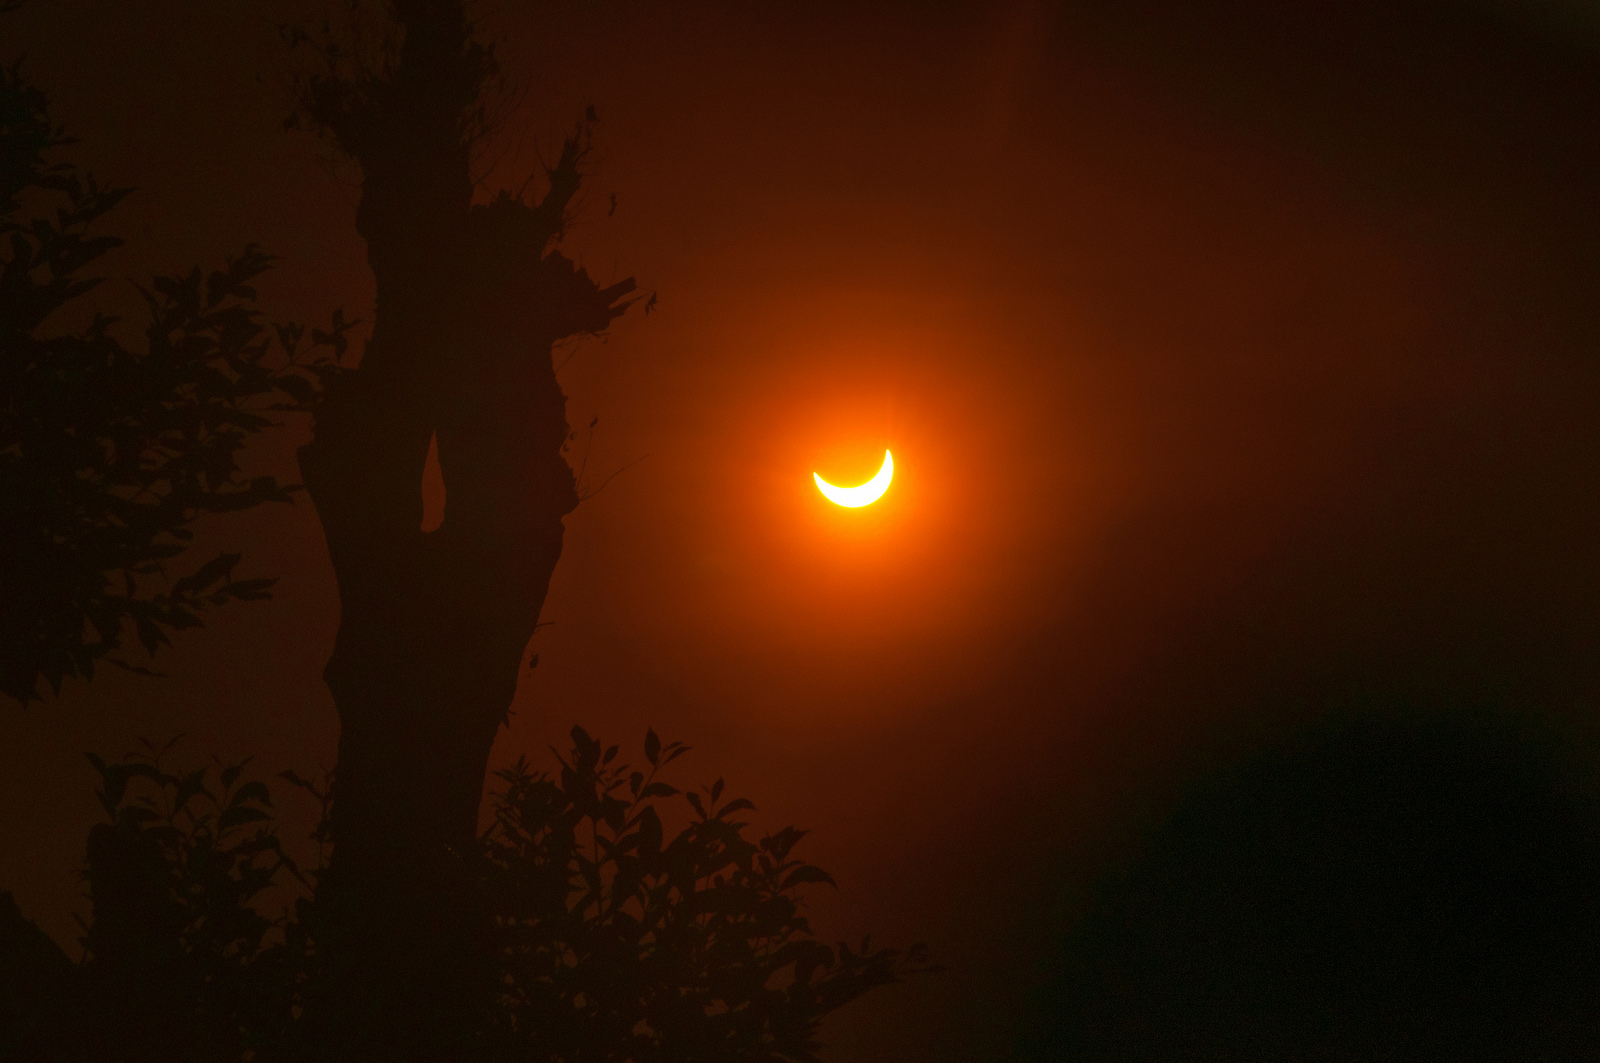 <p>A partial solar eclipse inSouth Tangerang, Indonesia in March 2016. The United States is gearing up for a total solar eclipse on August 21, 2017.</p>